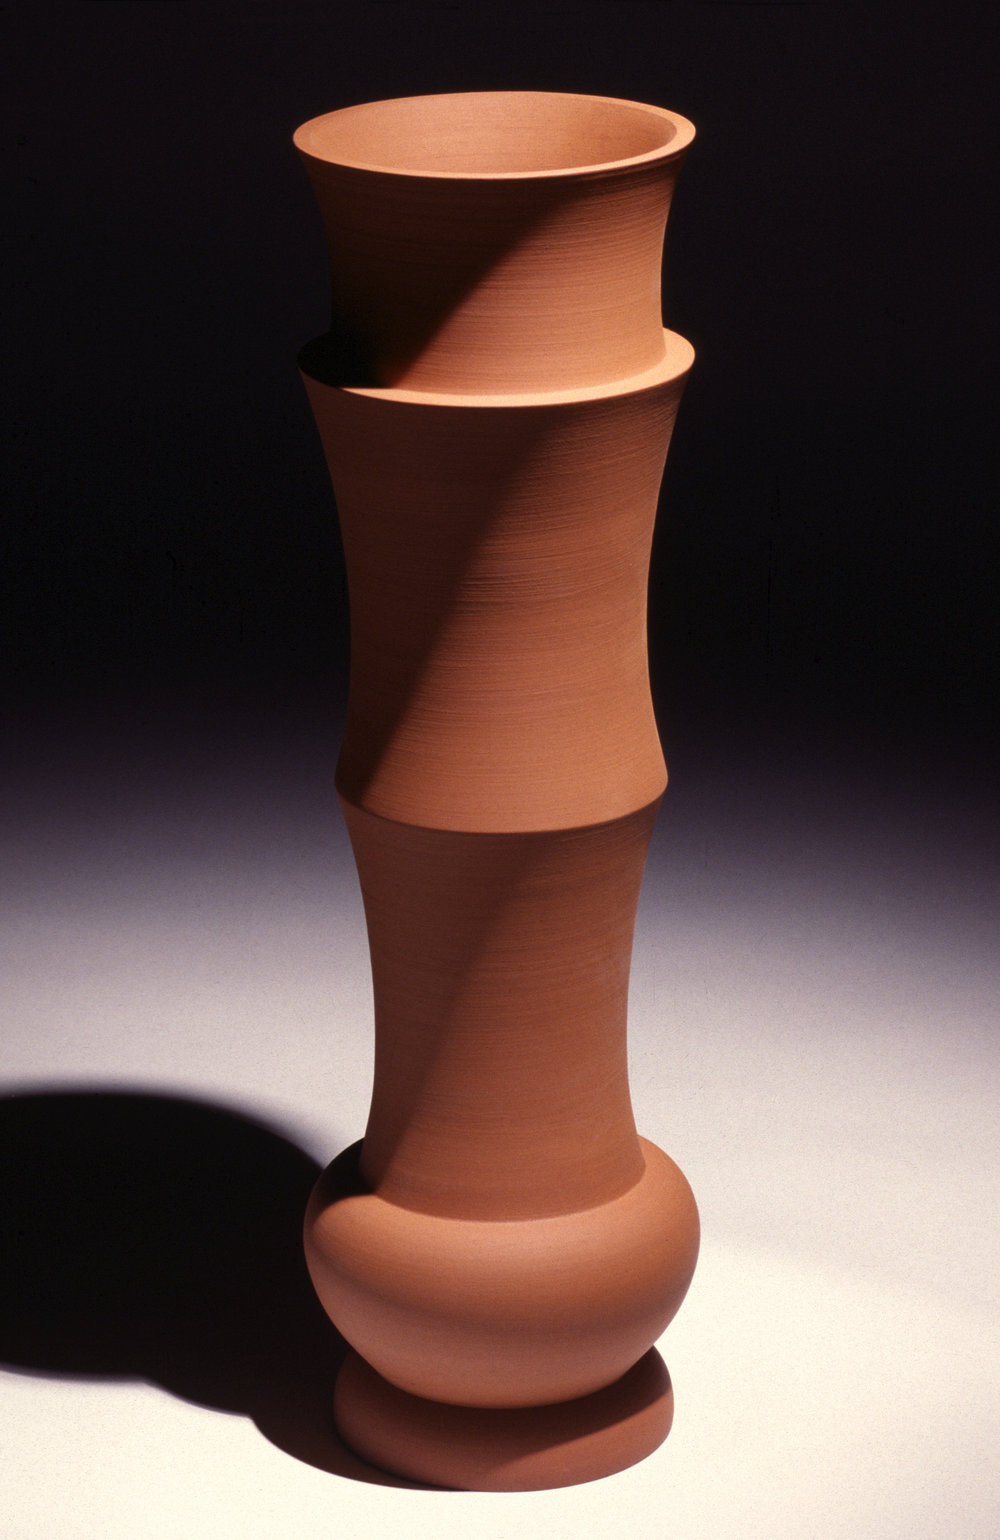 Sarri_photos_Clayvase2.jpg